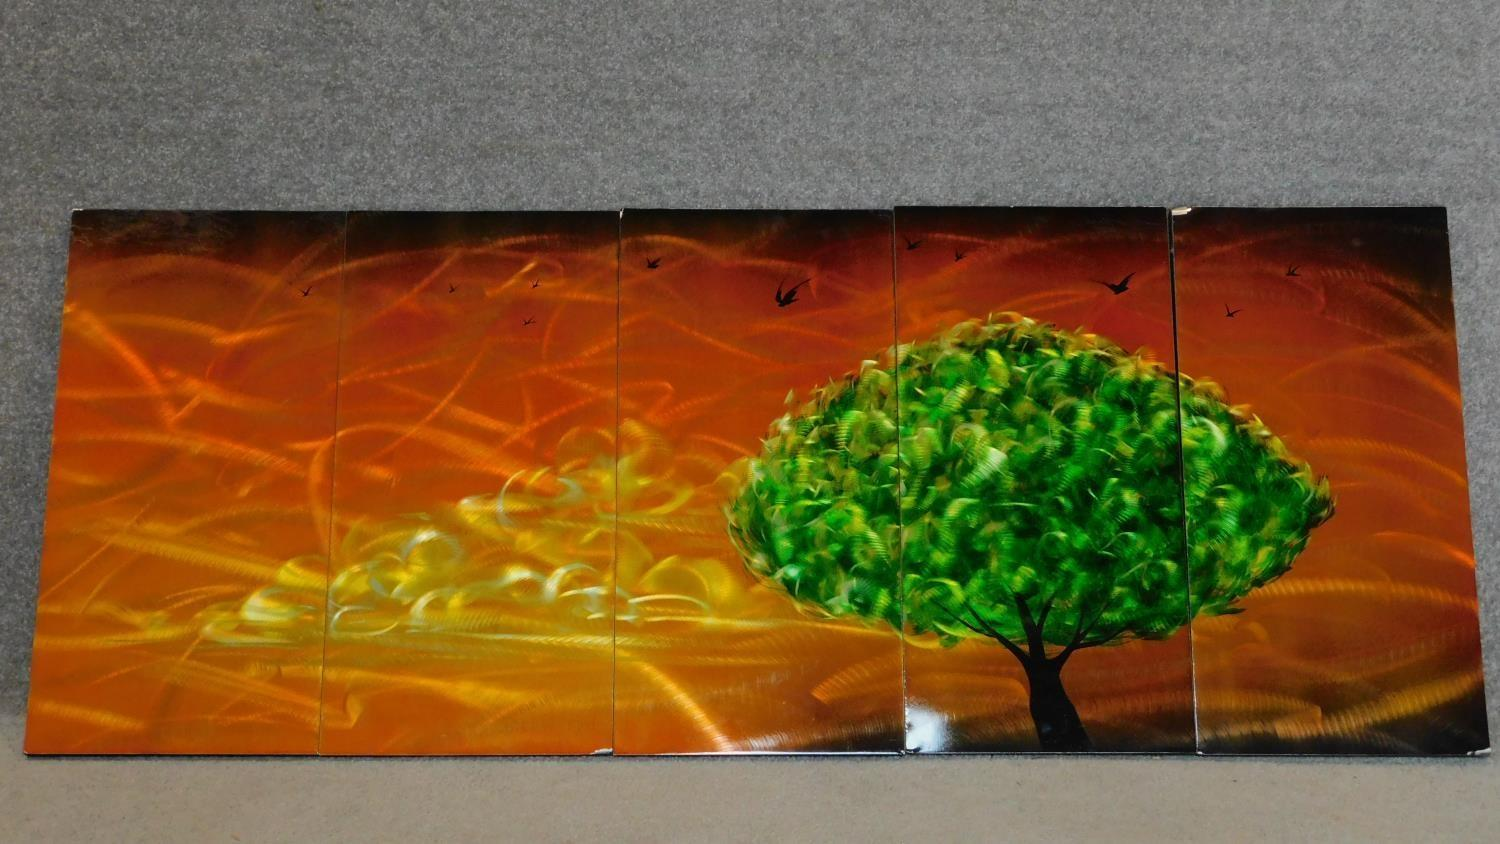 A set of five decorative lacquered panels, together depicting a green tree against an orange sky.